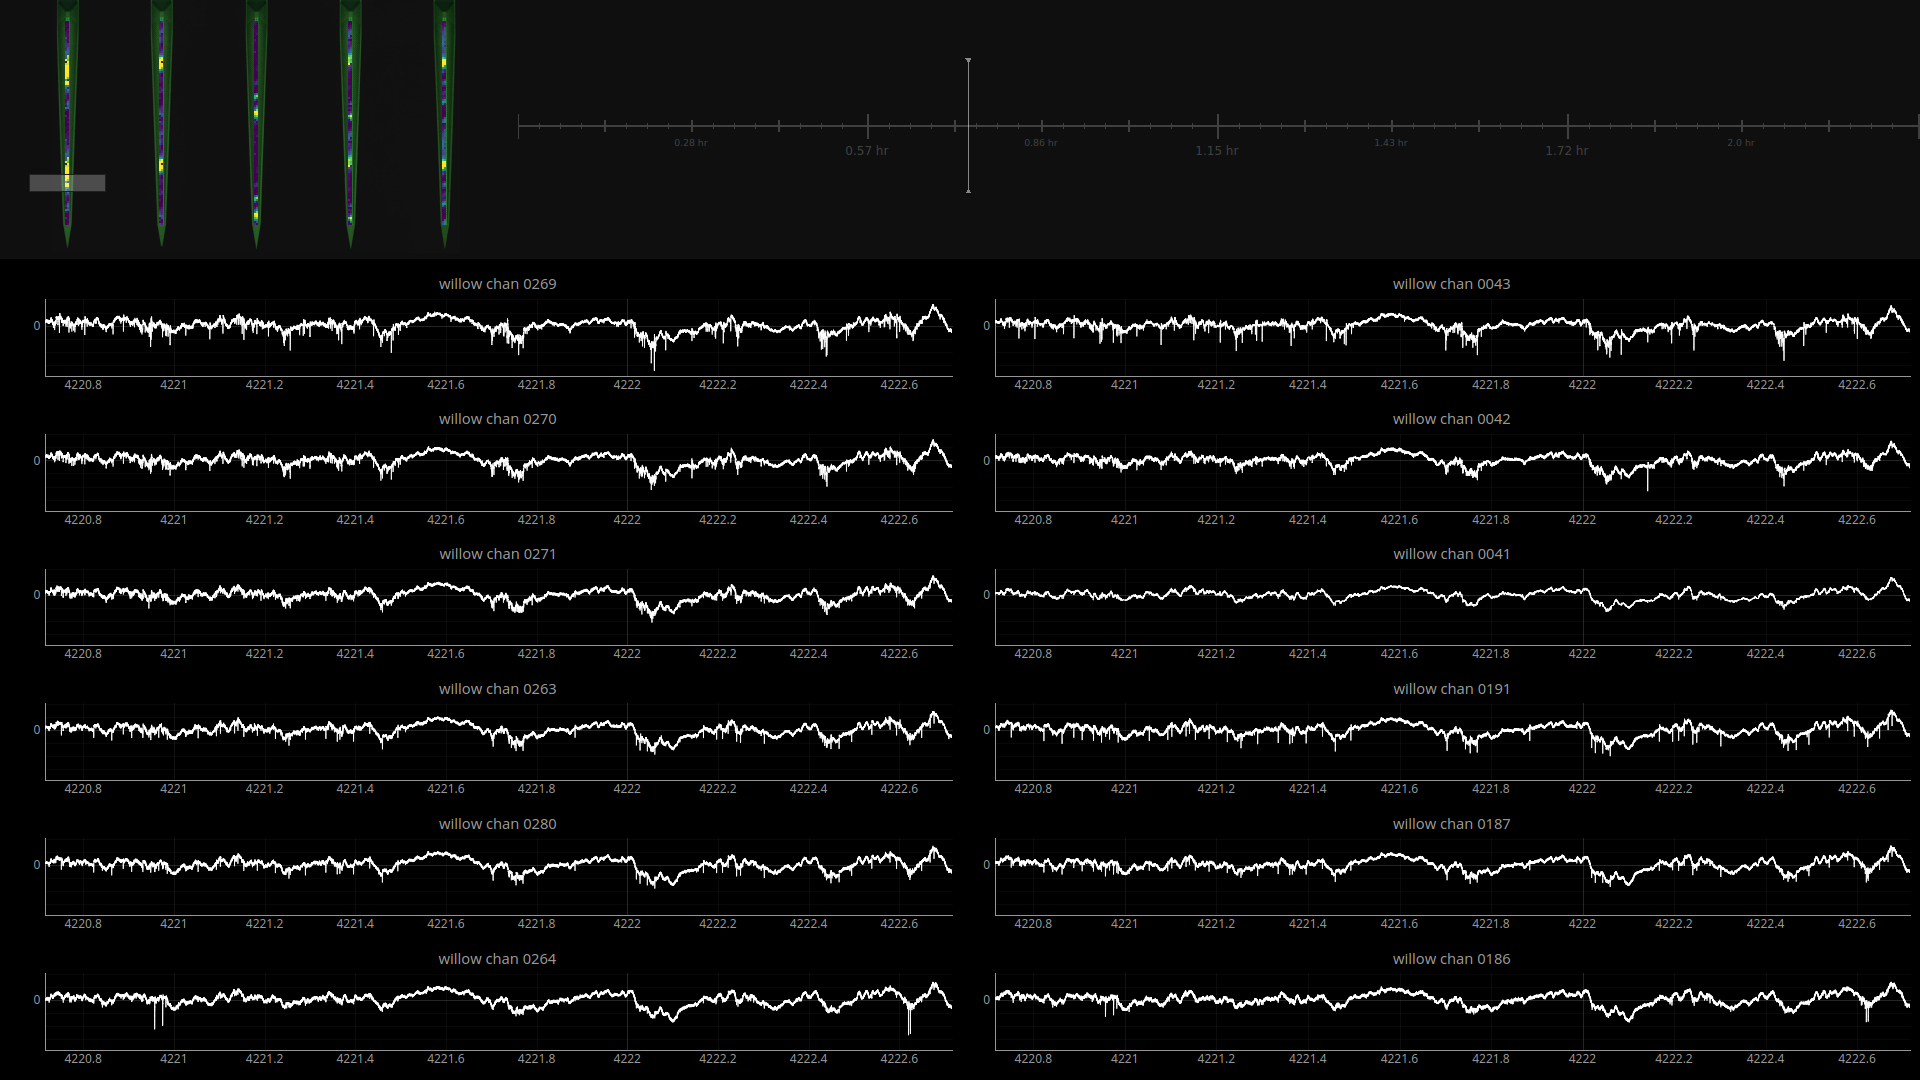 Screenshot of the Willow Data Explorer (WDX) showing 12 channels (from 1020 total) of neural data from mouse visual cortex.